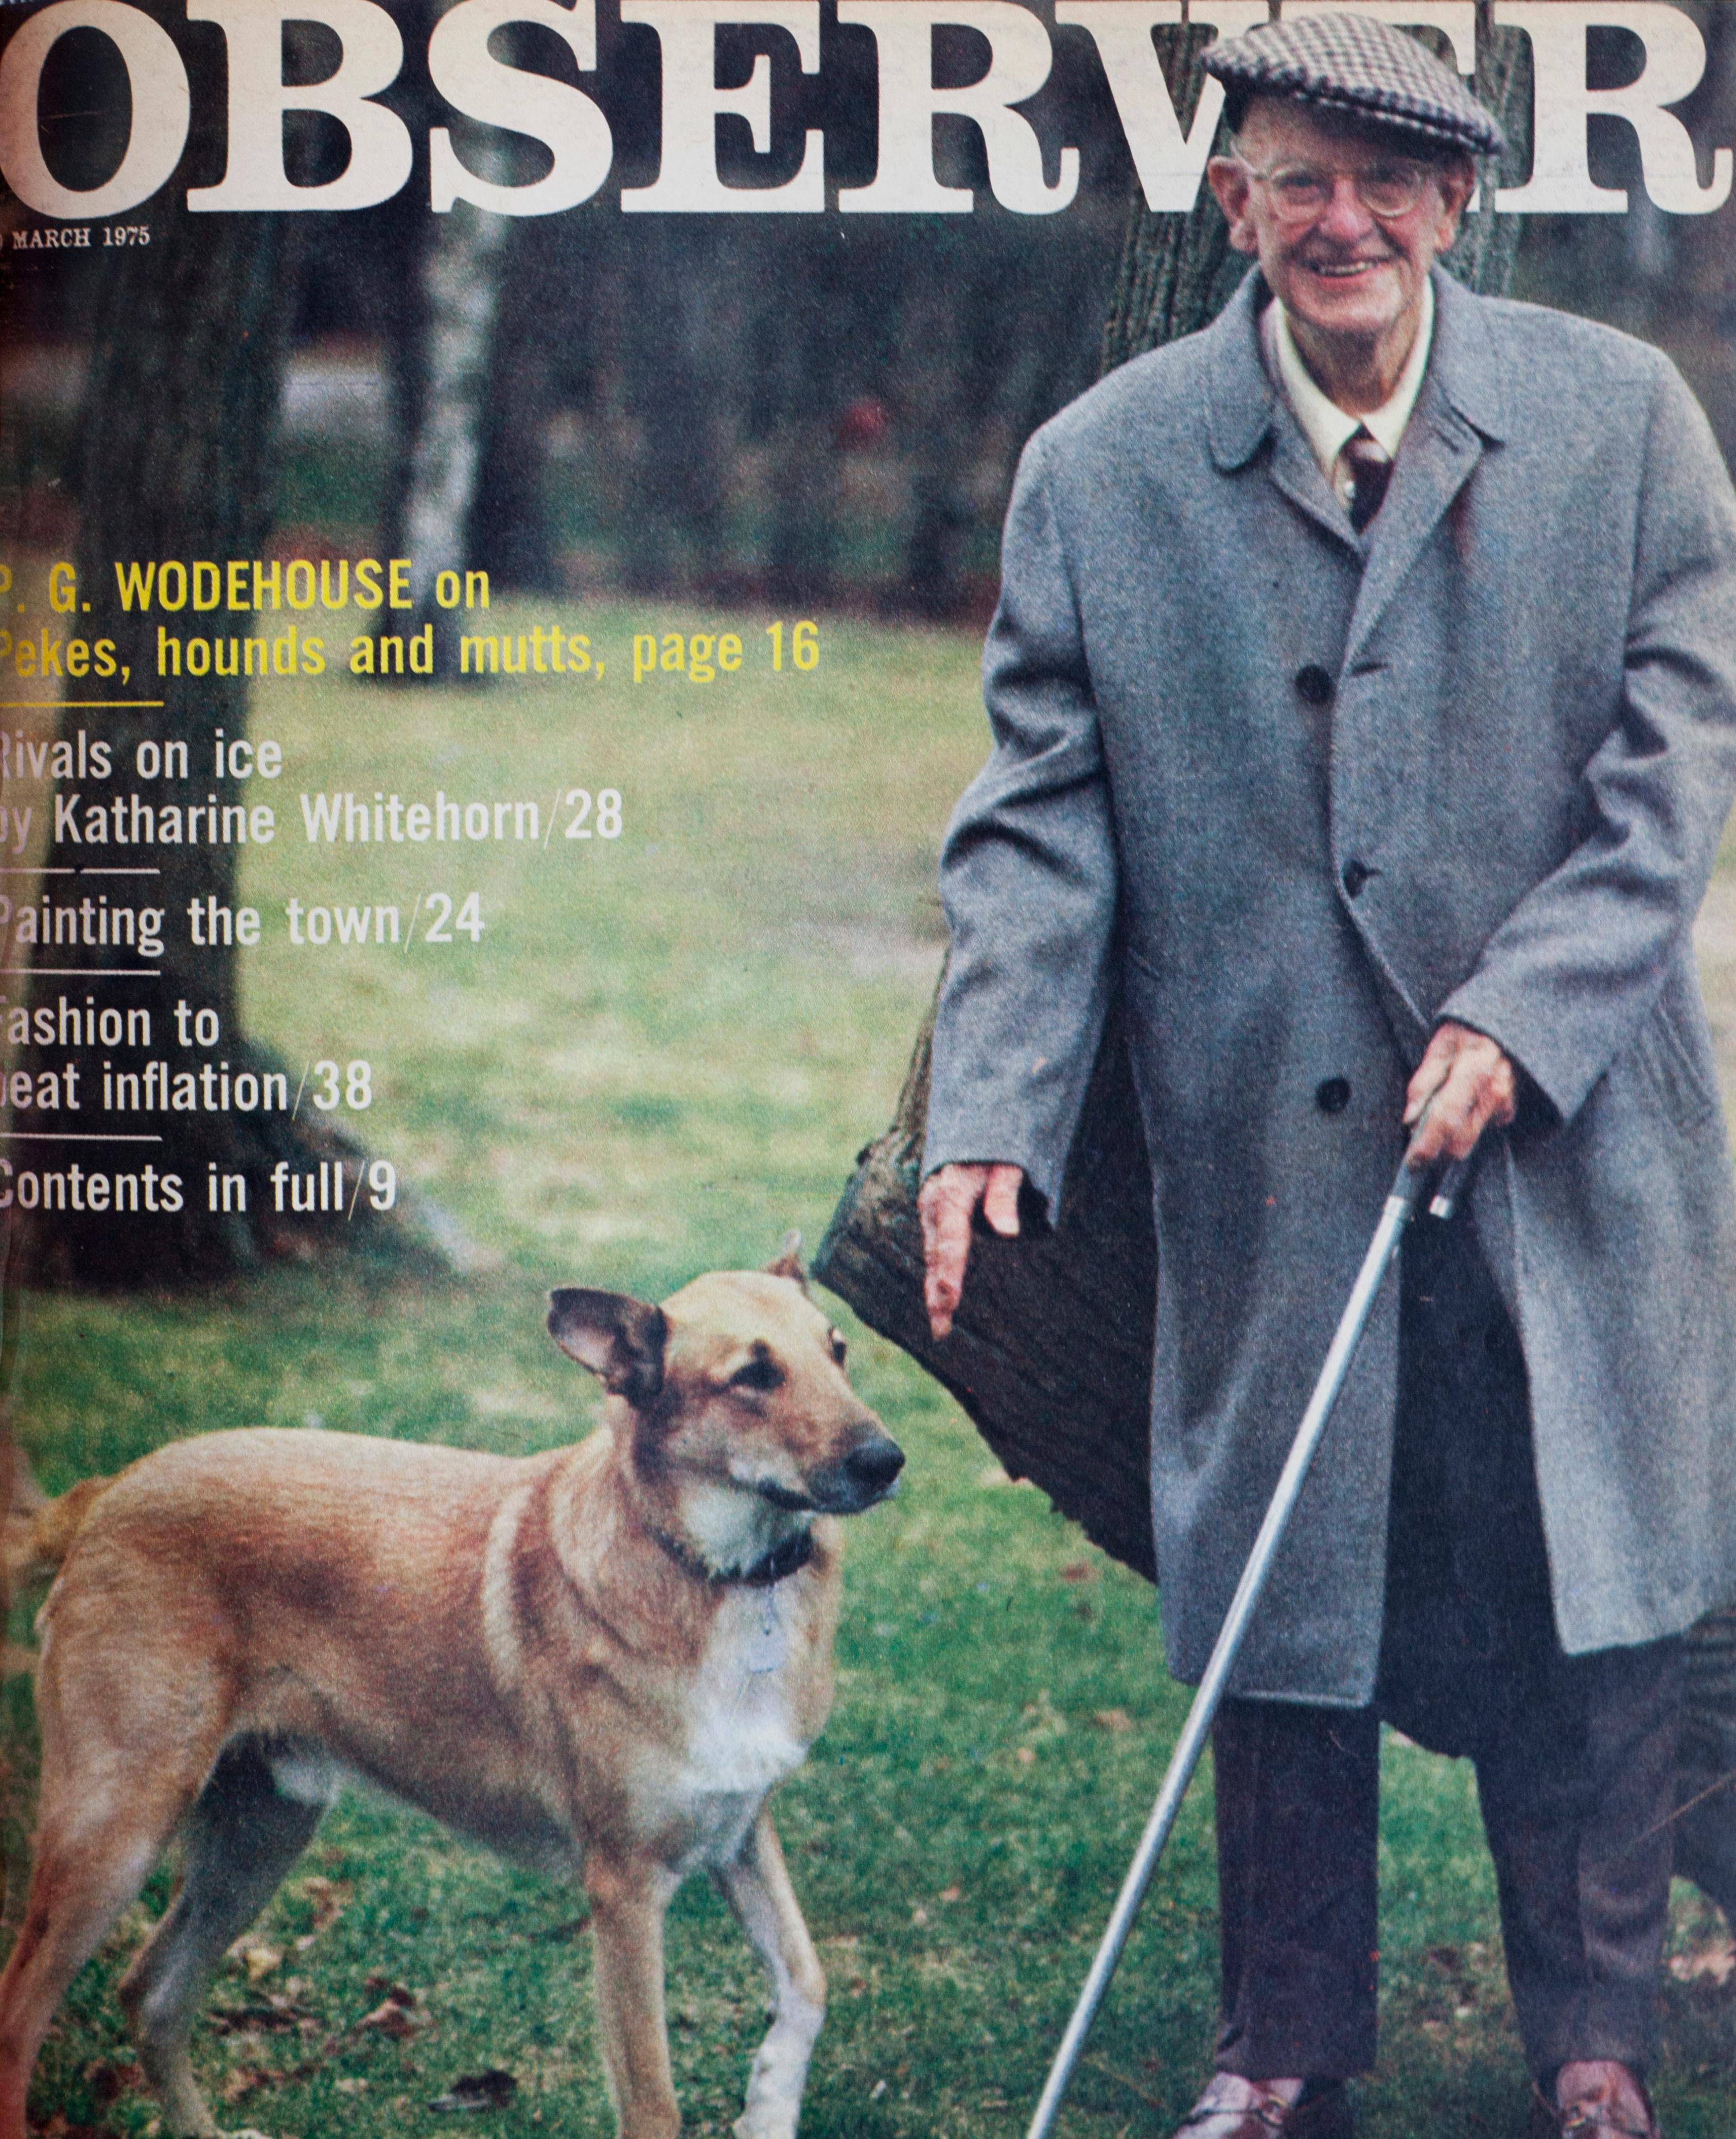 From the archive: PG Wodehouse and the love of dogs